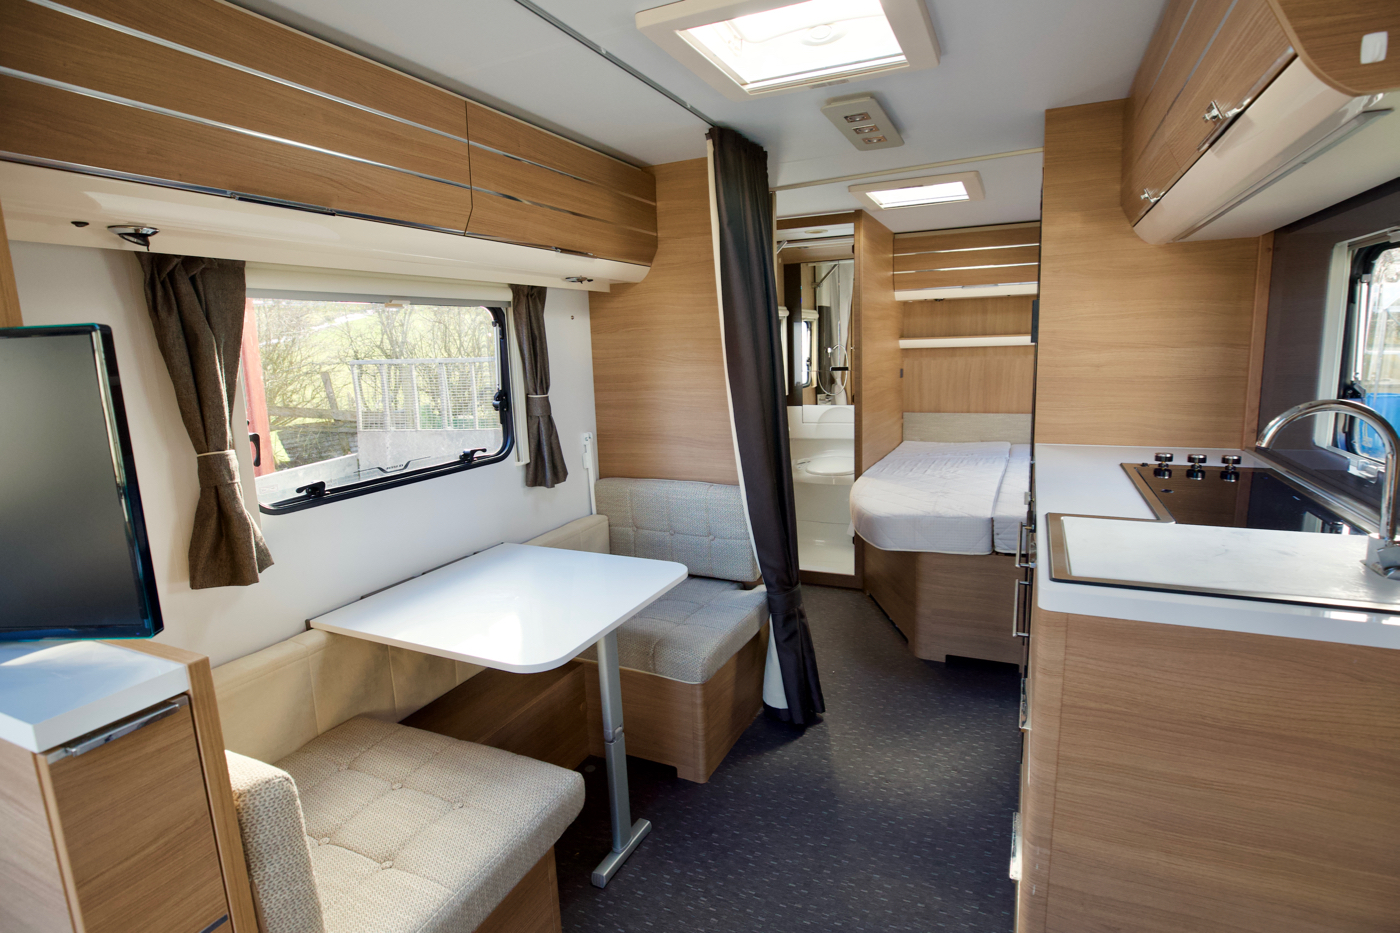 2018 Adria Adora 612 DT RHINE with ALDE heating and Power